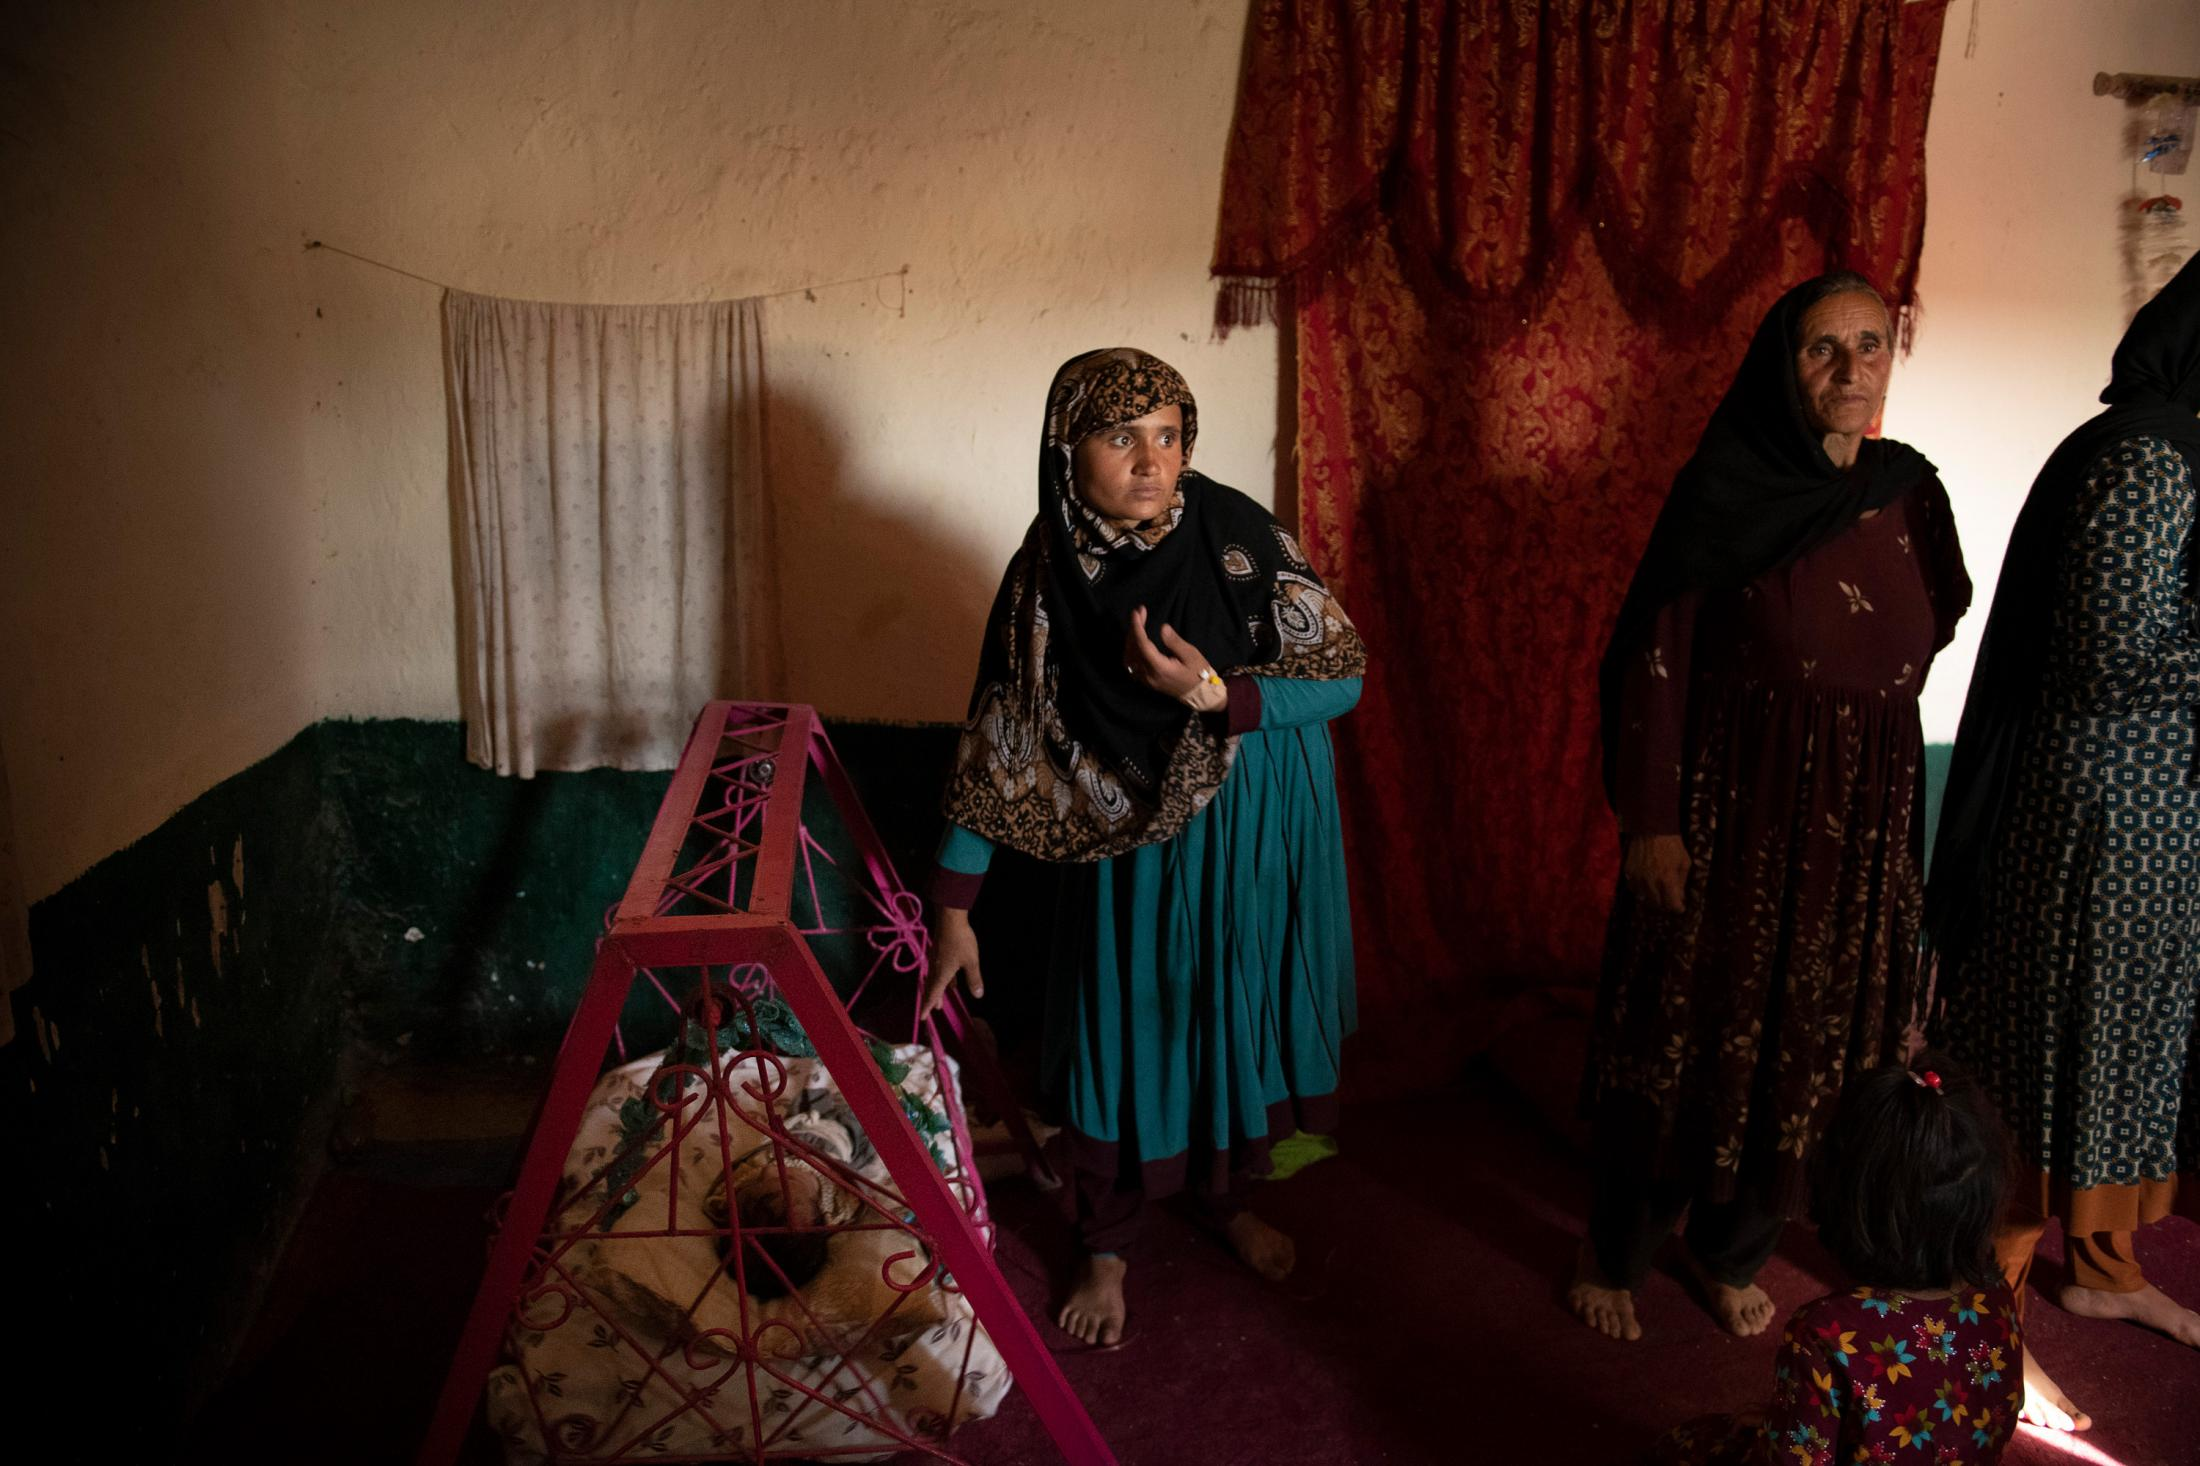 DOAGU VILLAGE | AFGHANISTAN | 8/27/18 | Fatana (24) swings the cradle of her 46 day old daughter, Esraa, in an attempt to put her to sleep. She was 5 months pregnant when her husband, Amanat Khan (27) and an ANP officer, was shot in fightings against Taliban in Niazi Village, not too far from their home village. Kiana Hayeri for the New York Times